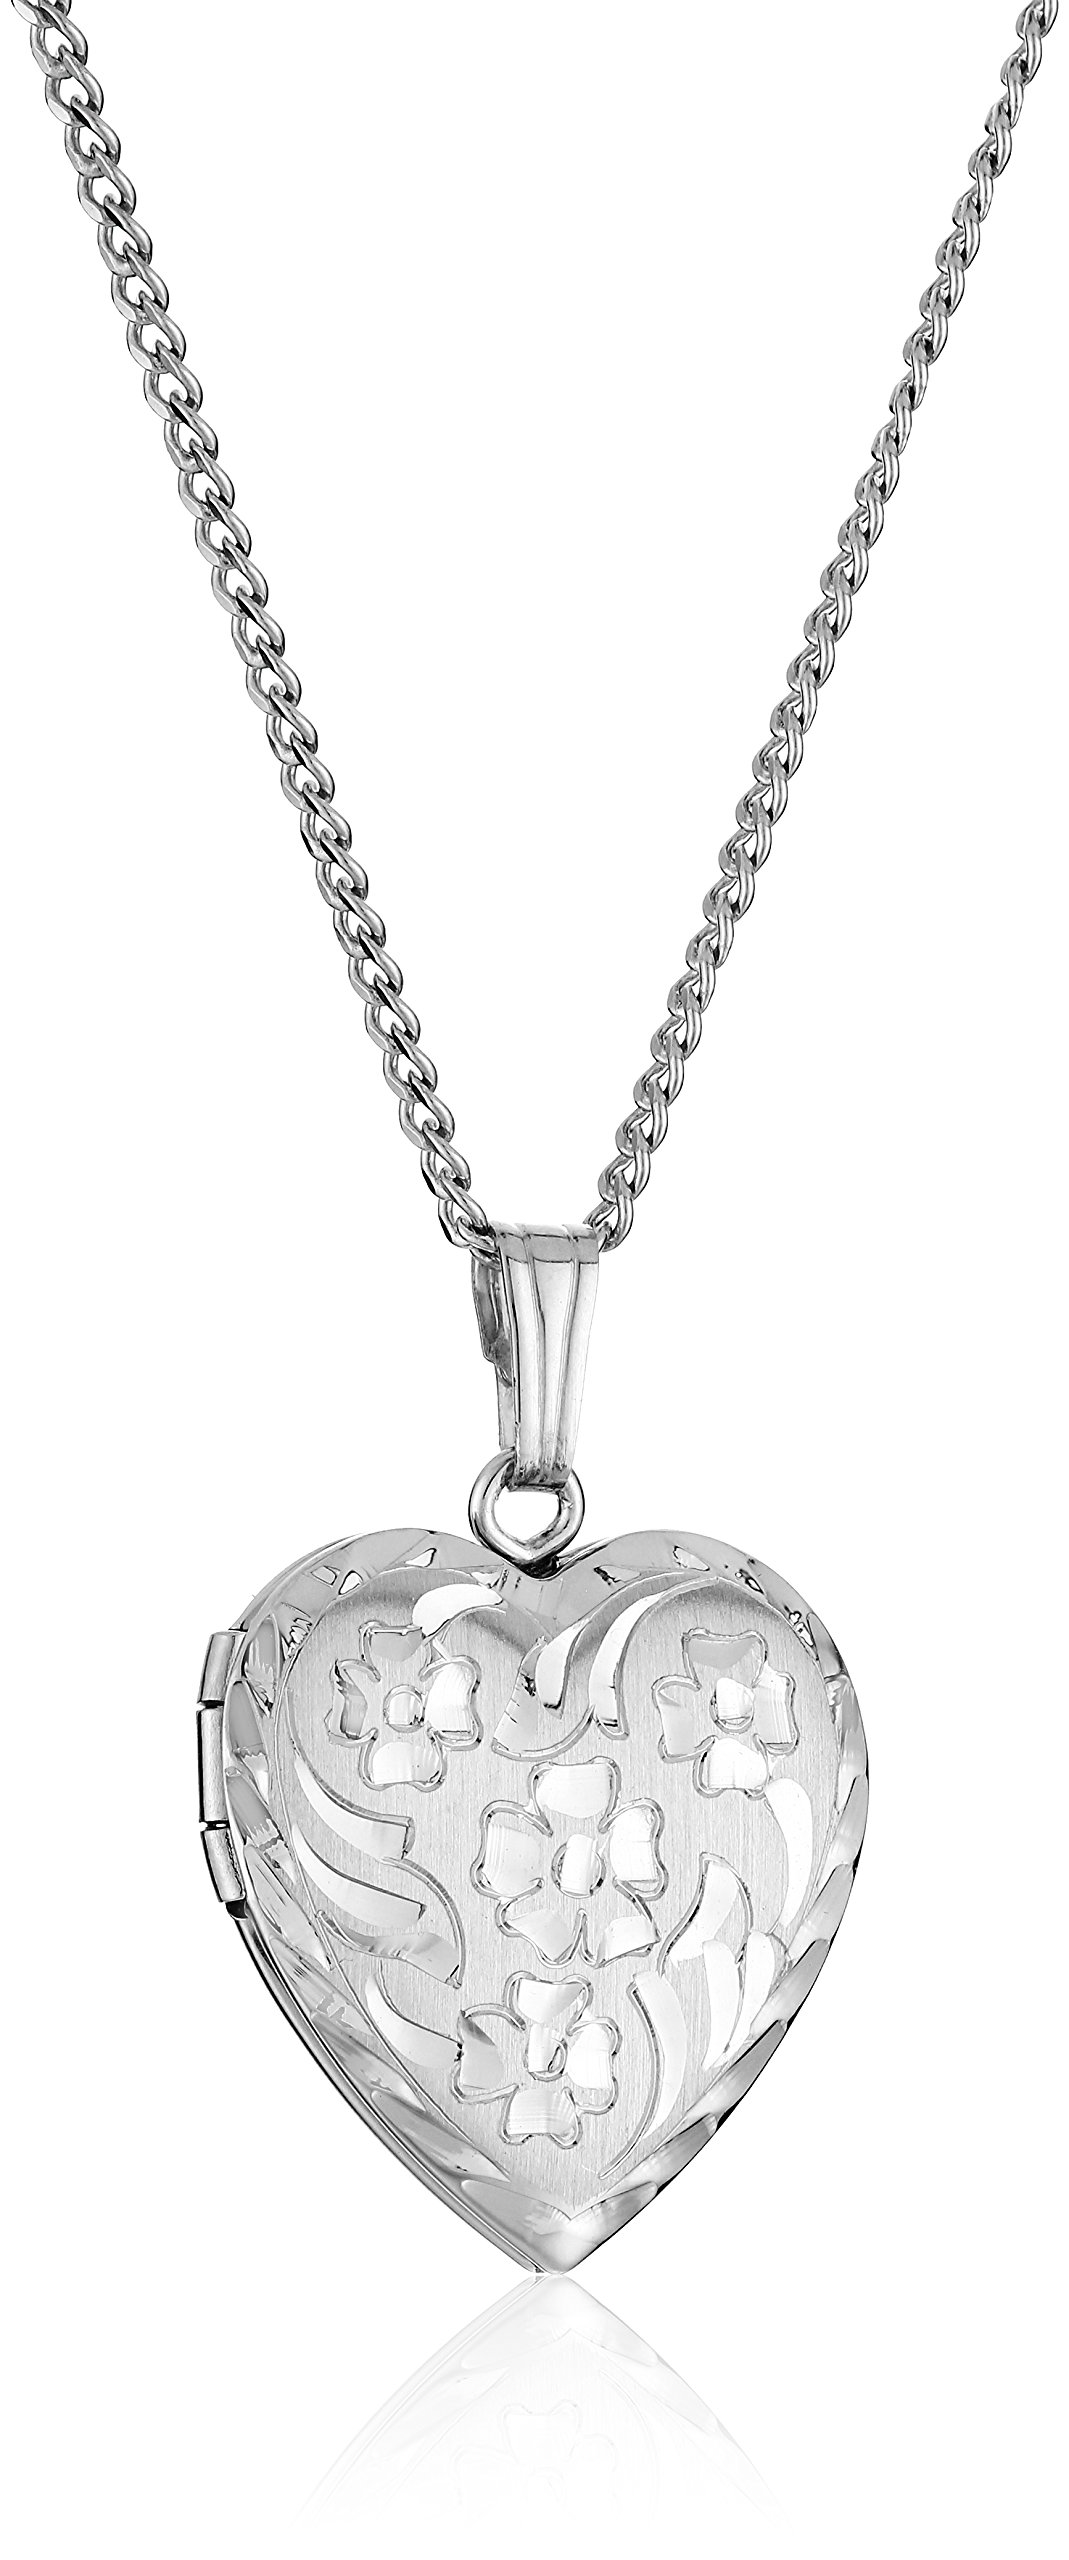 Sterling Silver Engraved Flowers Heart Locket Necklace, 18'' by Amazon Collection